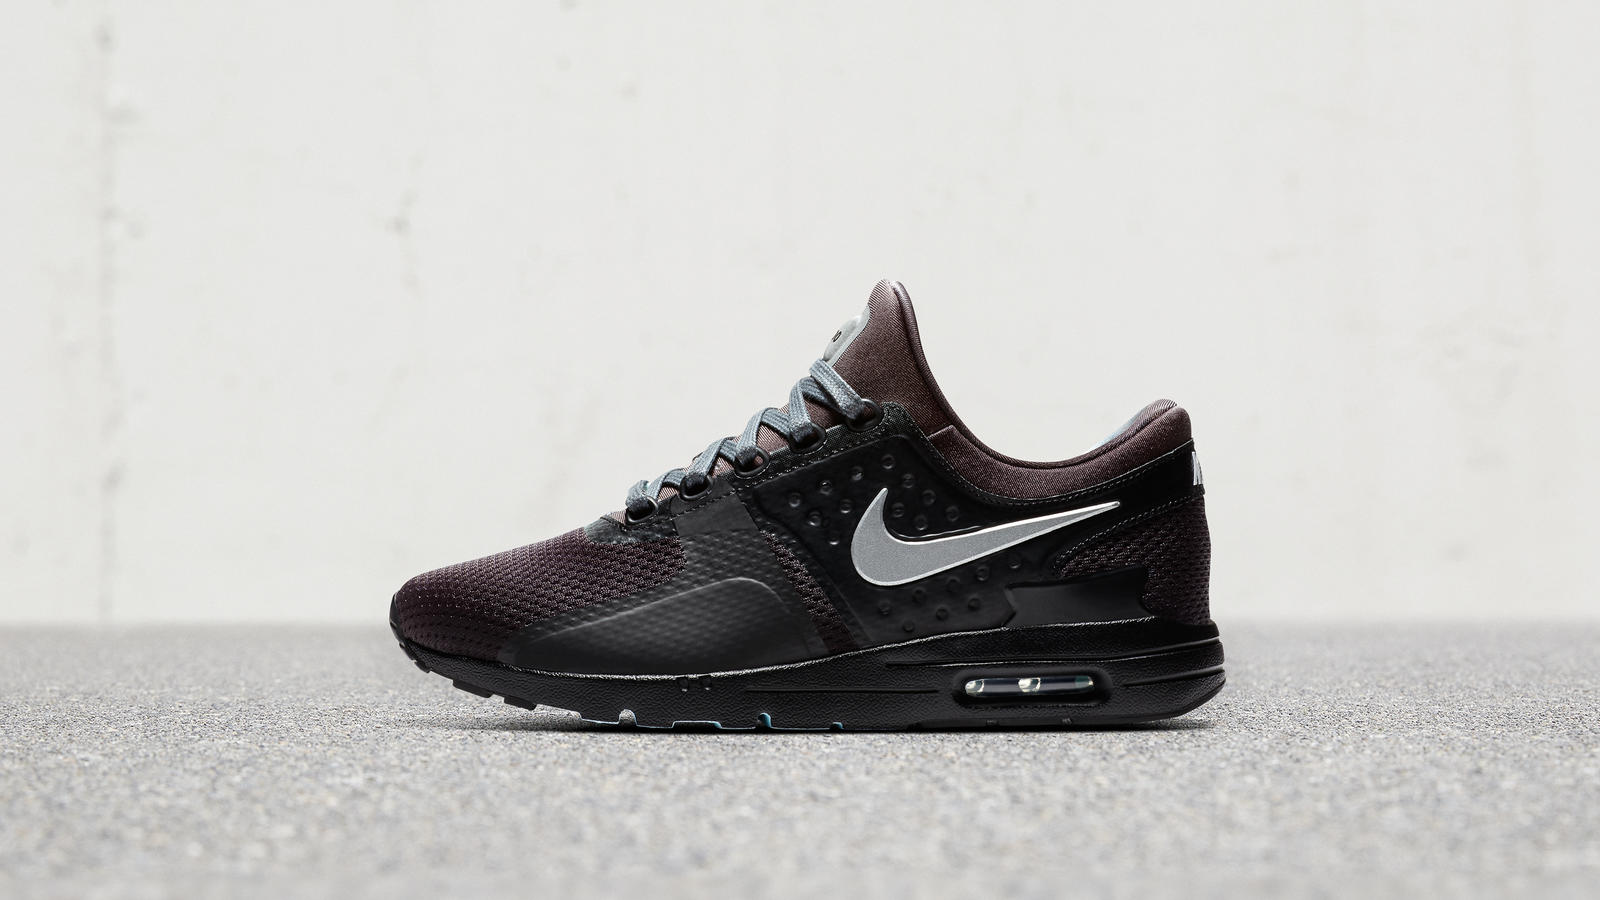 online store c1b73 0dfea Kaycee Rice s Nike Air Max Zero design is available January 20 in grade  school sizes on nike.com in North America.